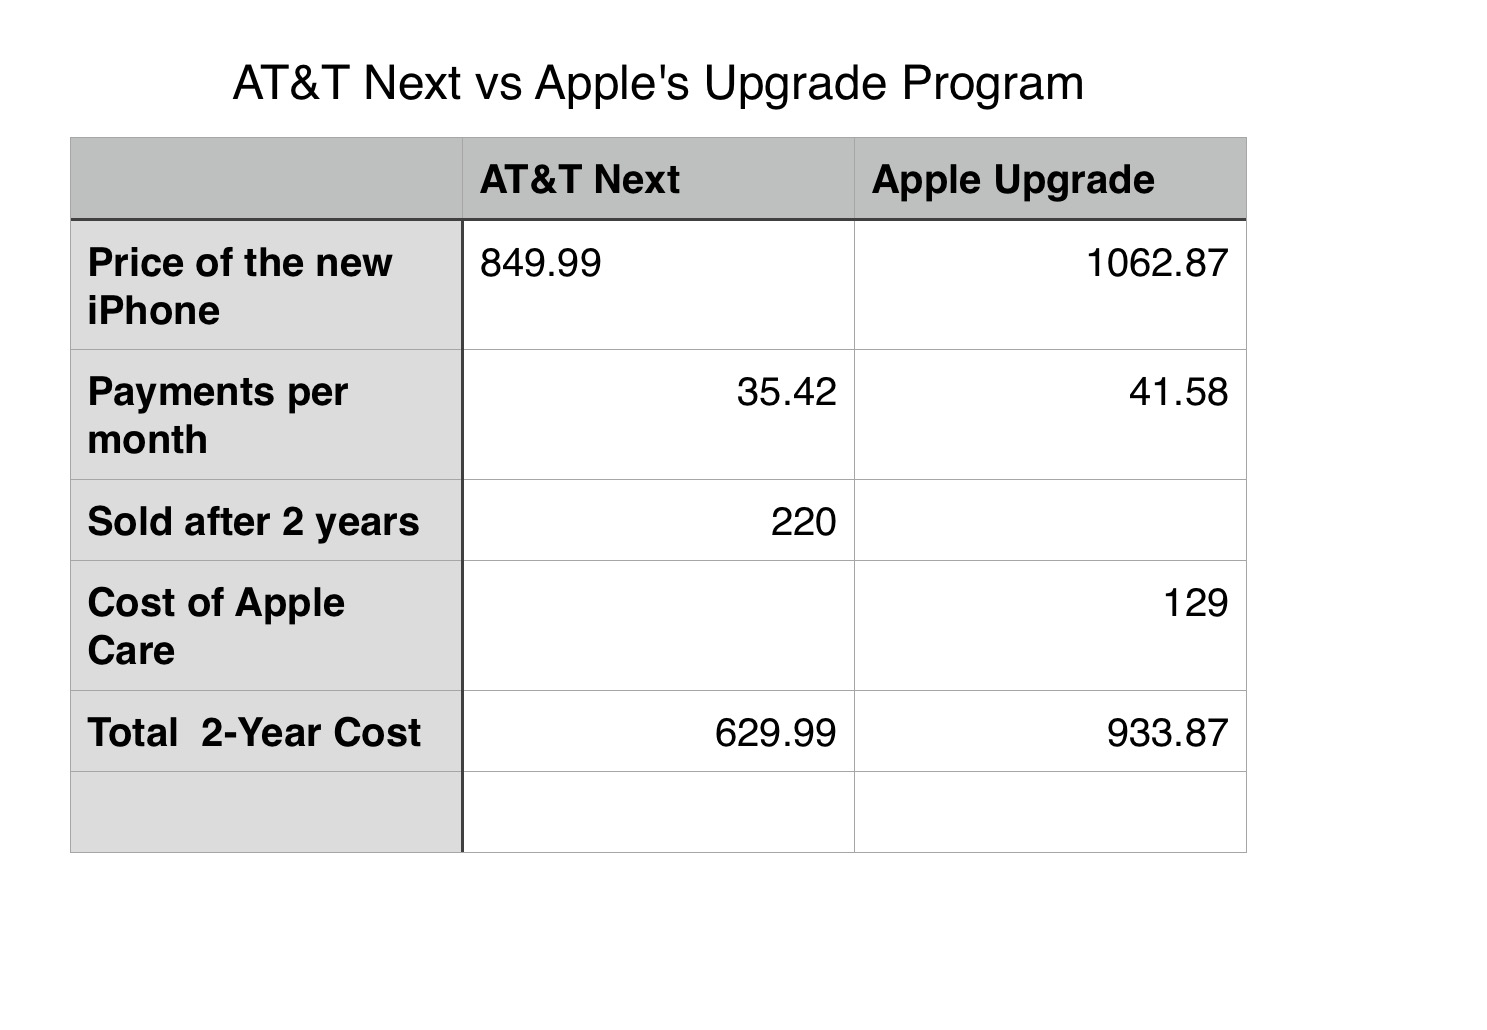 Adjusted costs factoring in a more realistic used iPhone value and adjusting for Apple Care